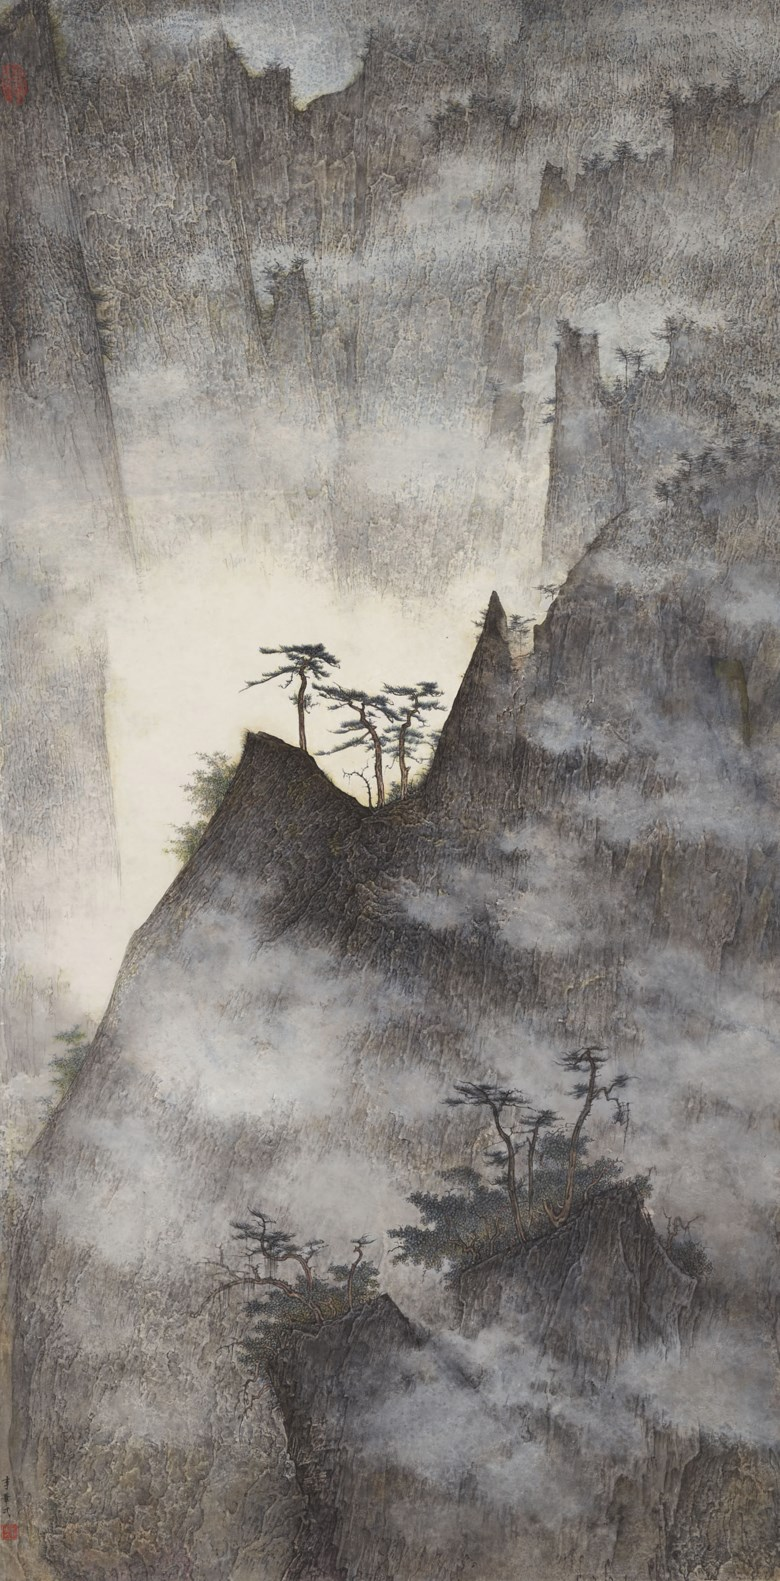 Li Huayi (b. 1948),Rising Mountain, 2006. Scroll, mounted and framed, ink and colour on paper. 53¾ x 26⅝ in (136.5 x 67.5  cm). Estimate HK$1,600,000-2,600,000. Offered in Chinese Contemporary Inkon 25 November 2019 at Christie's in Hong Kong